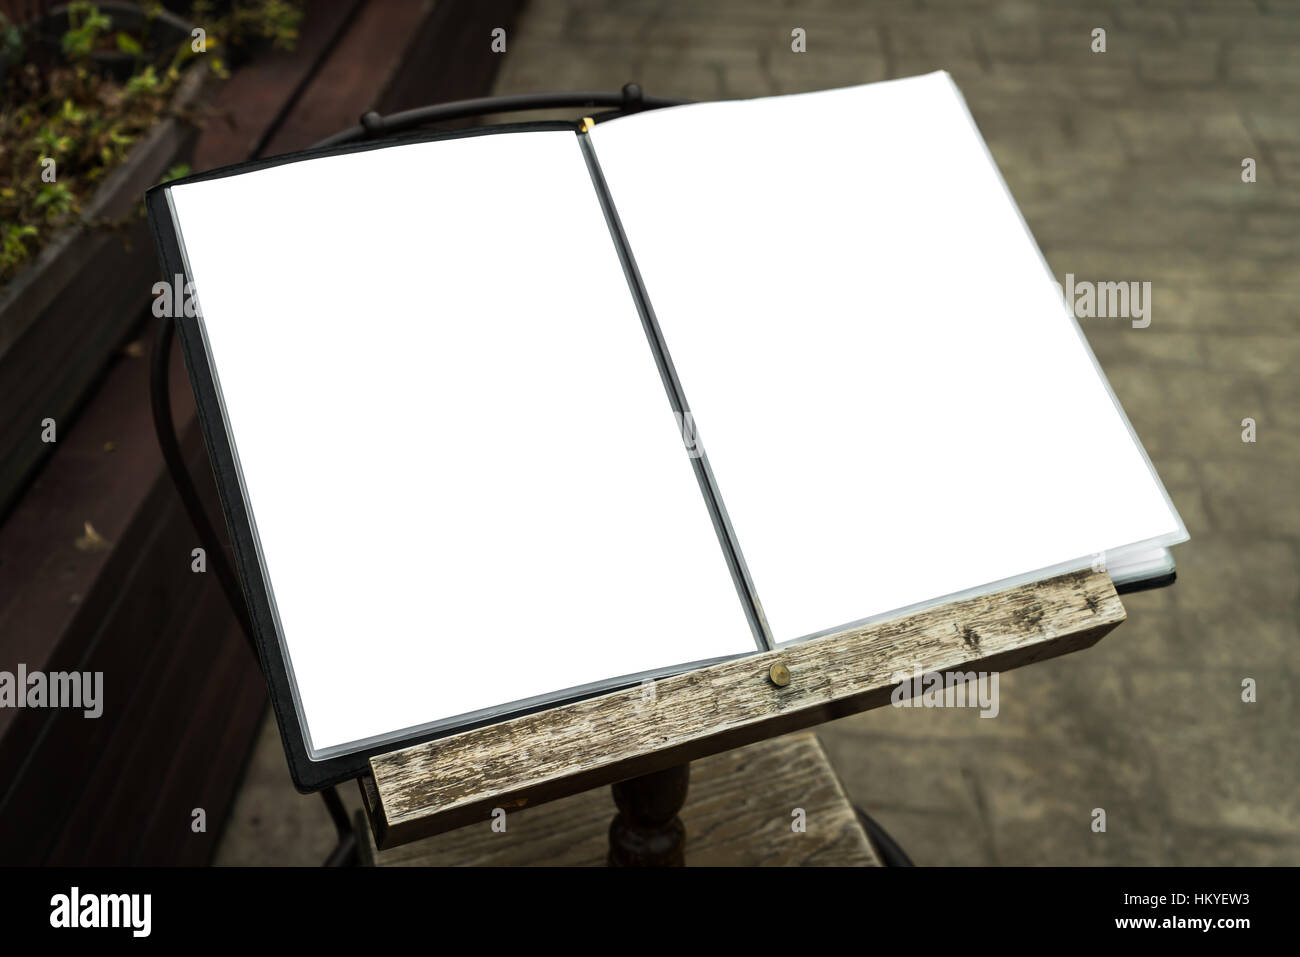 Menu frame in front of Restaurant - Stock Image